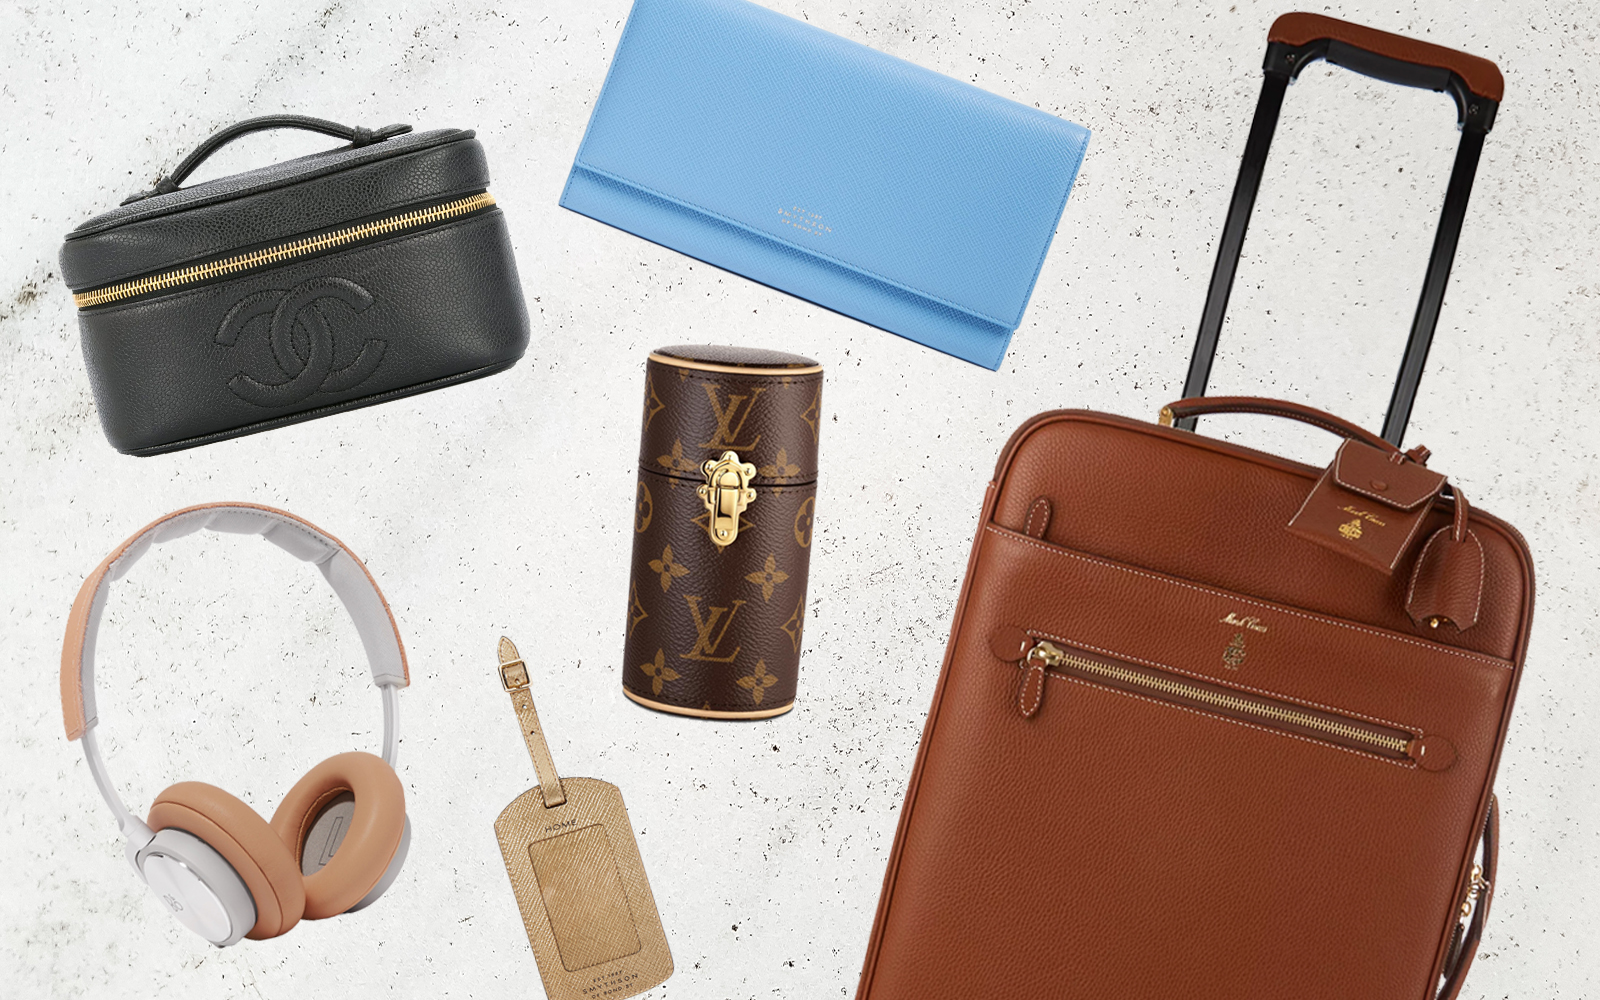 The 10 Luxury Travel Accessories That Are Actually Worth It